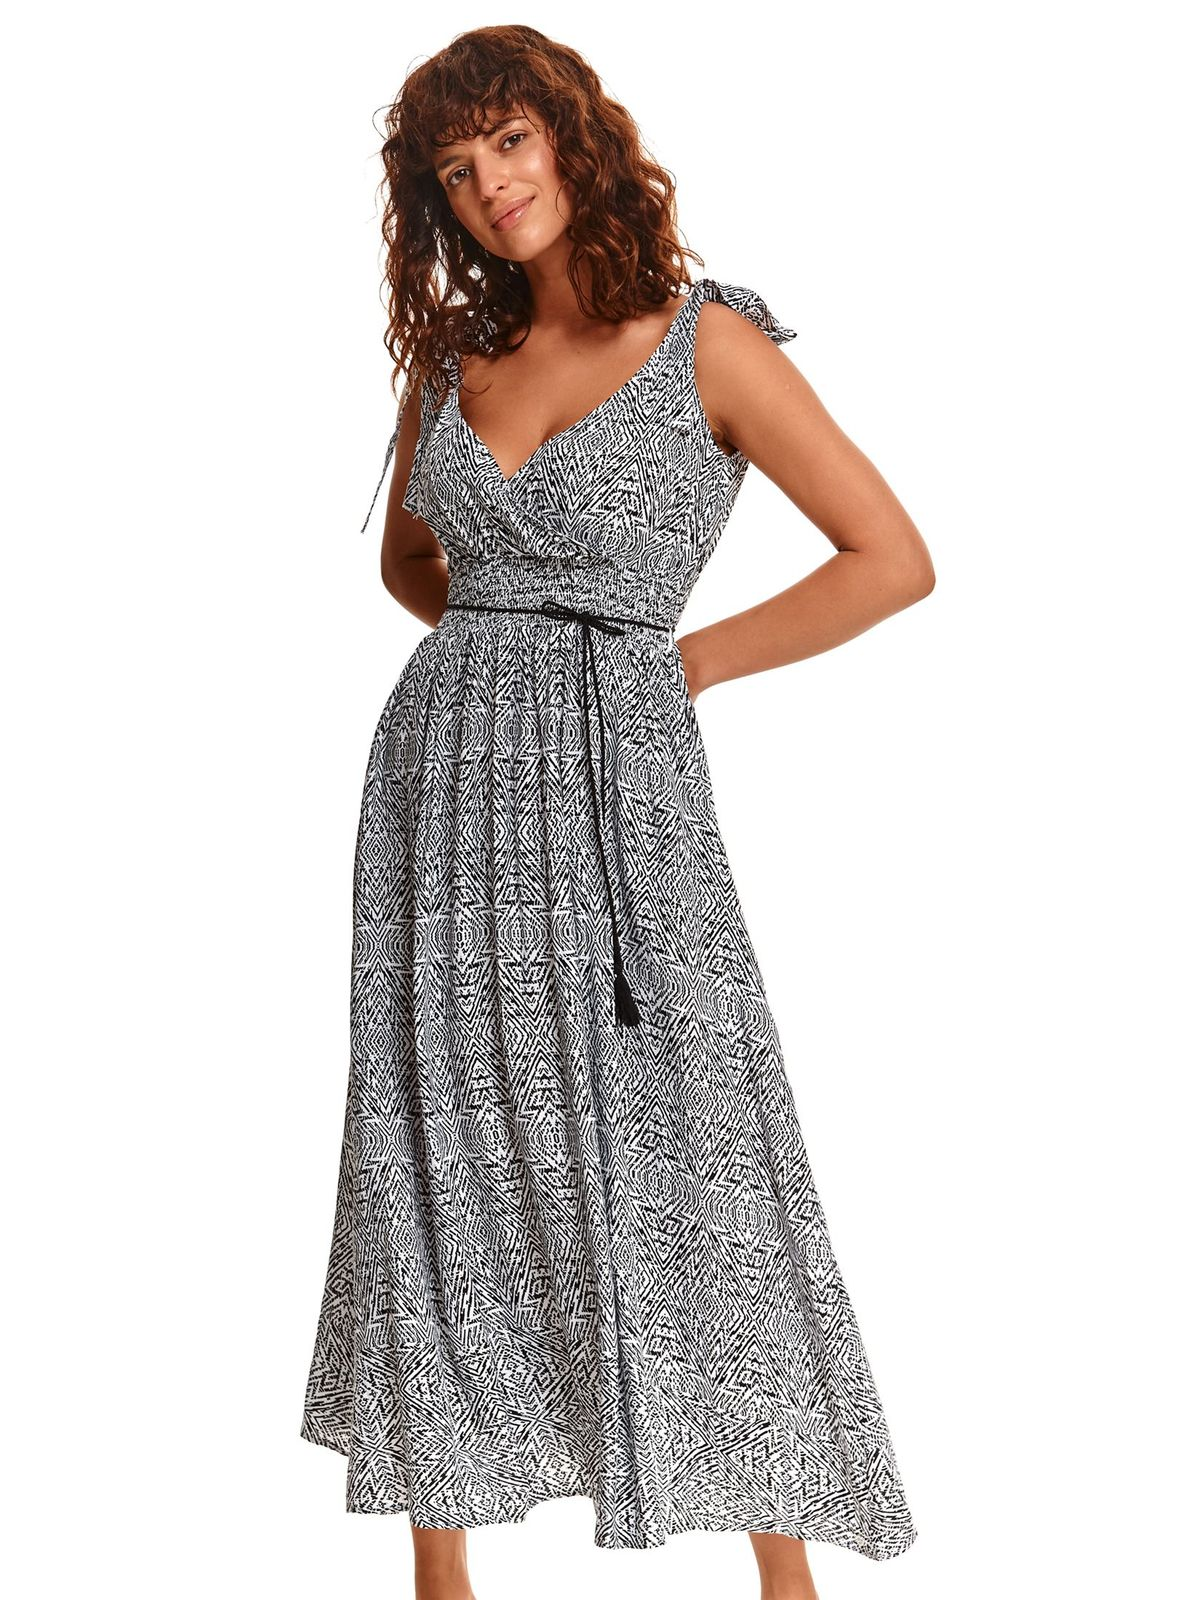 White dress long cloche with elastic waist is fastened around the waist with a ribbon